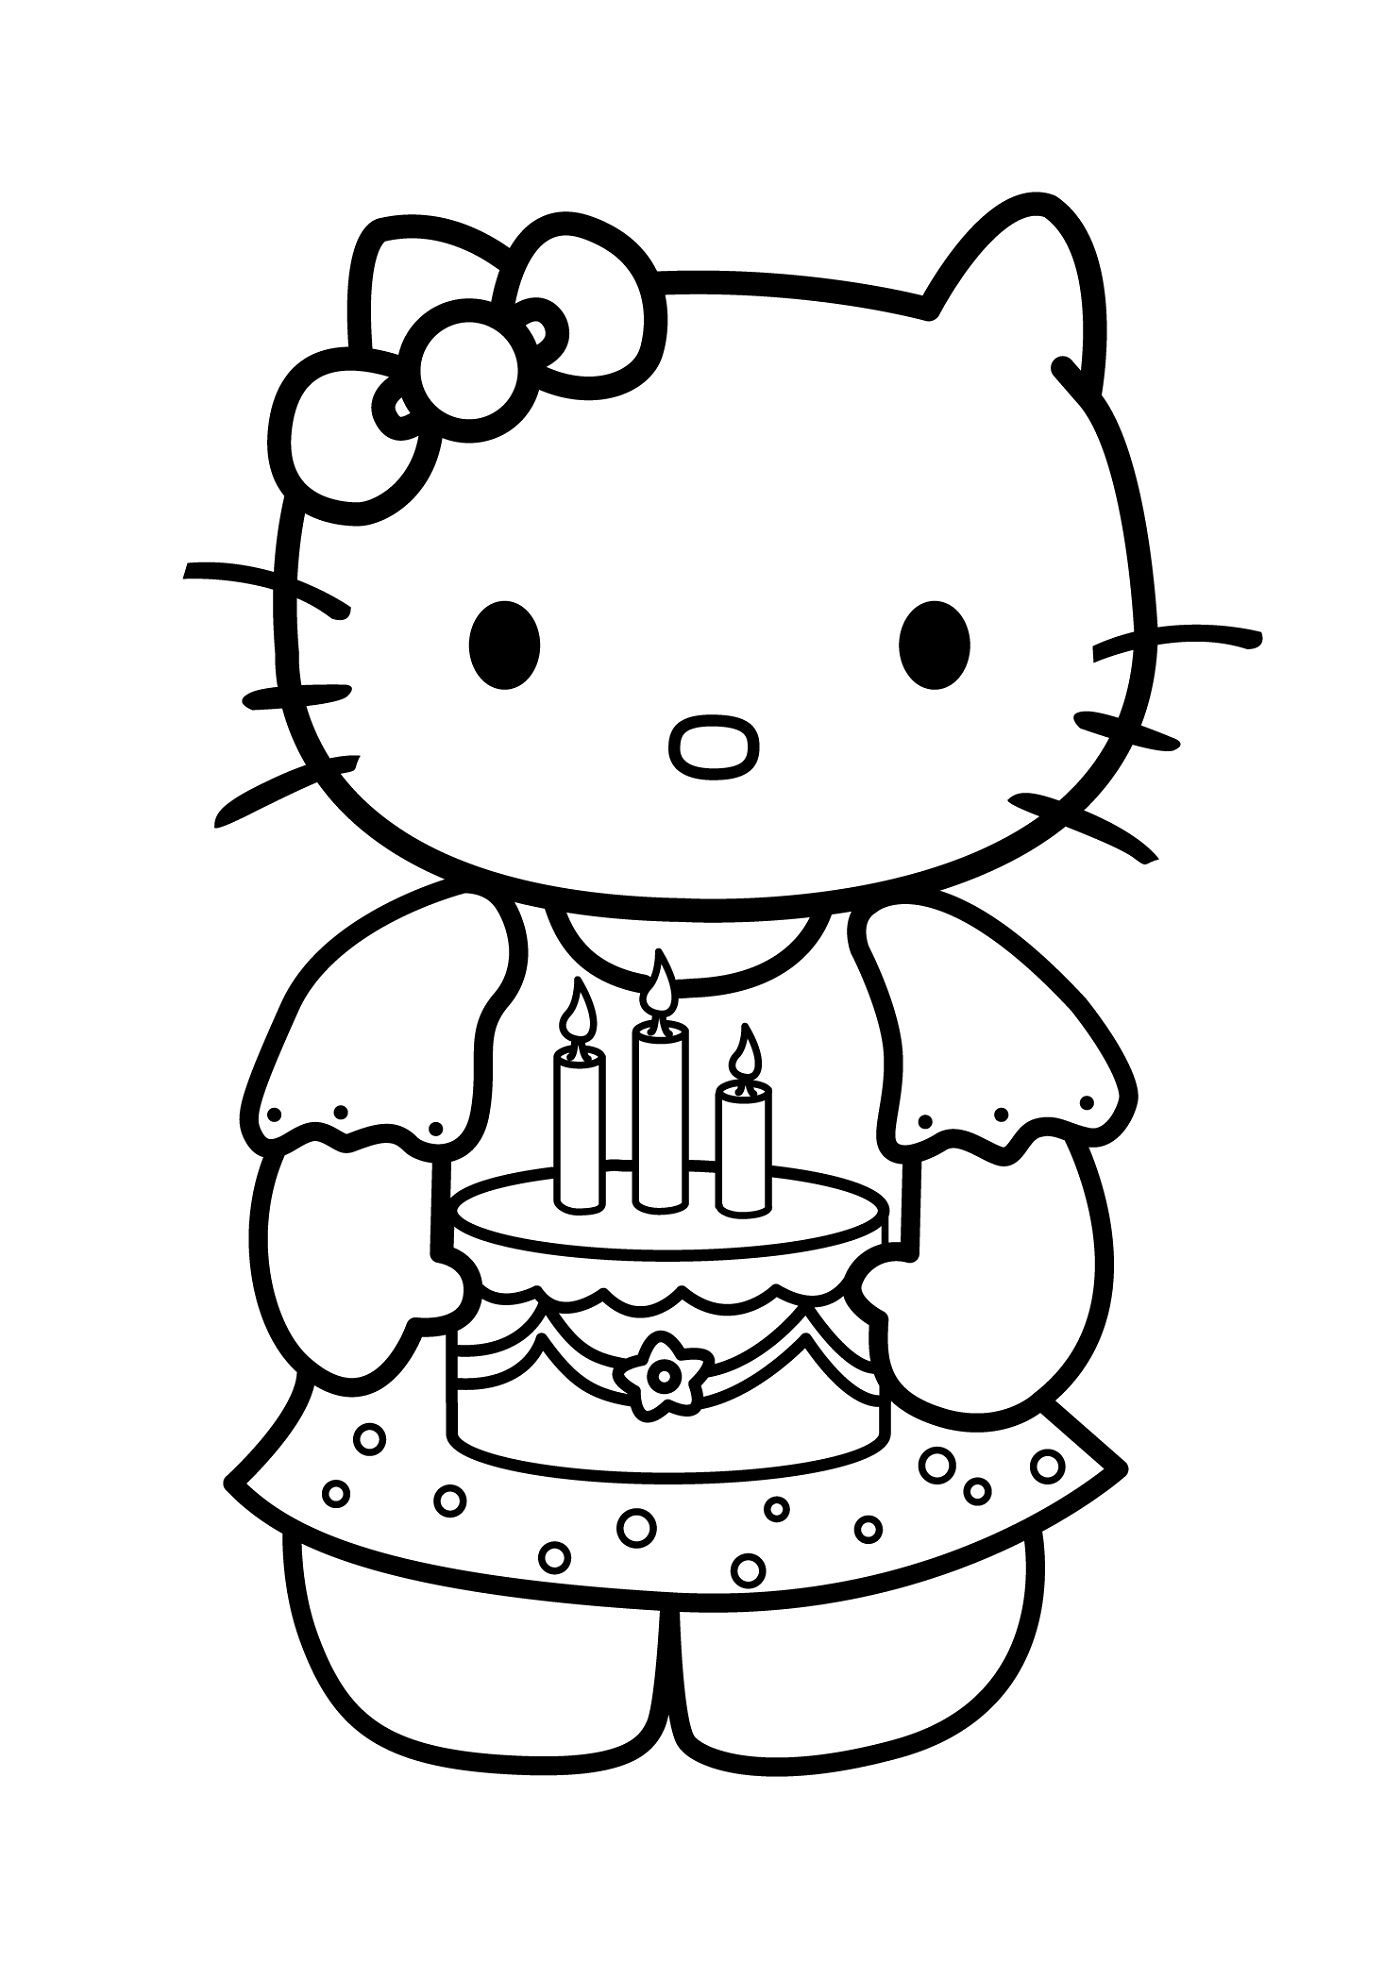 Adorable Kitty Cat Coloring Pages | 101 Coloring